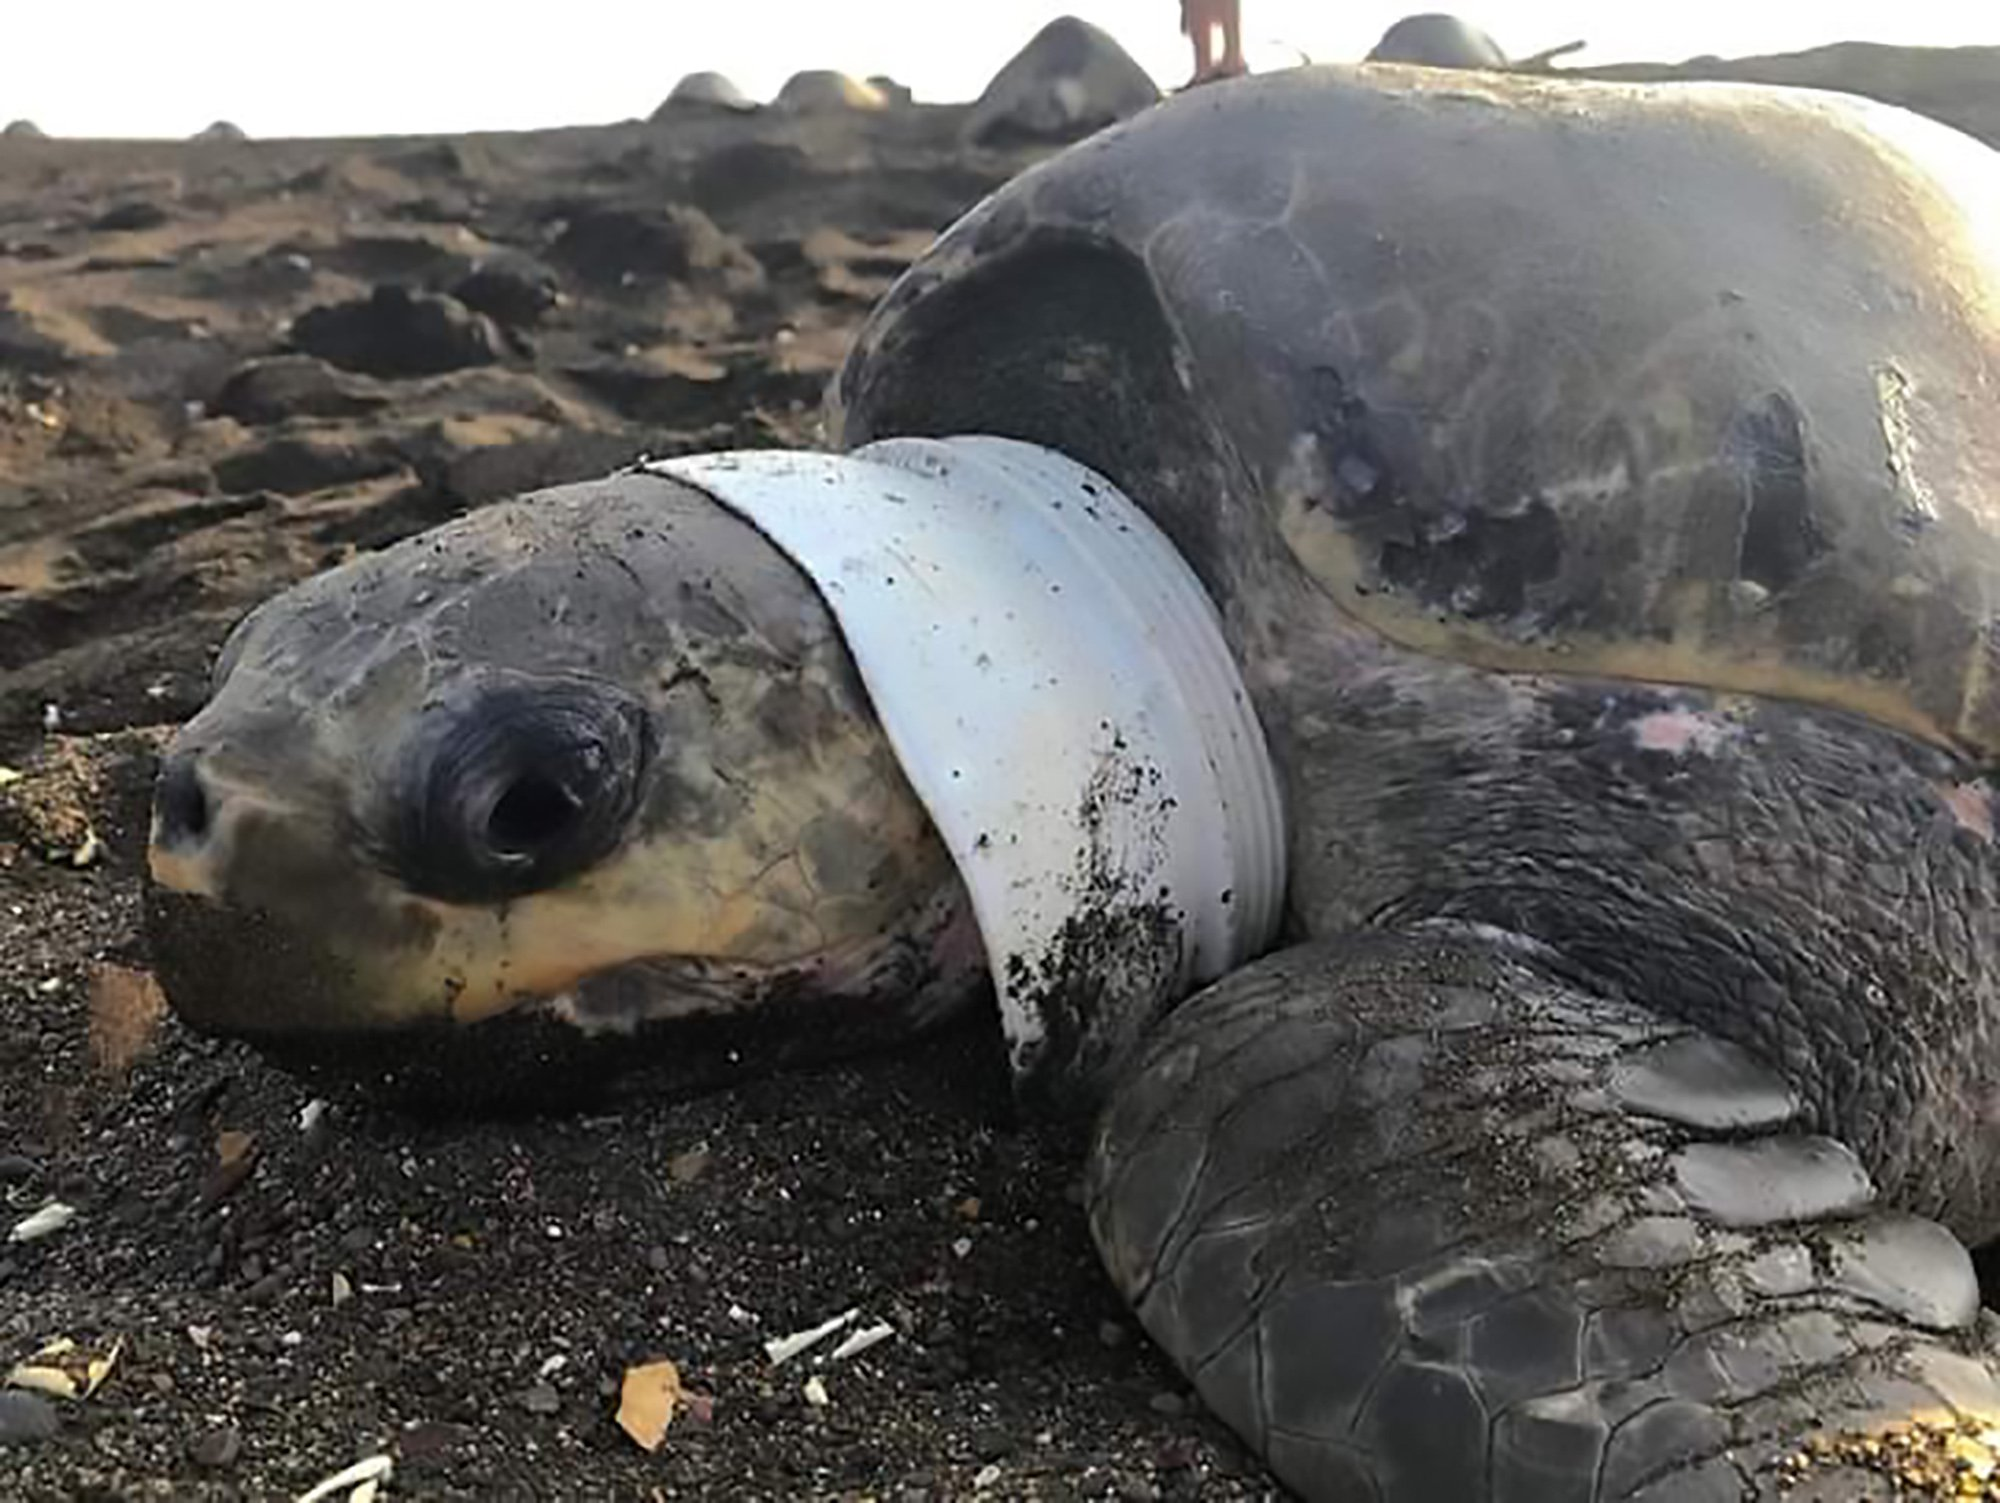 """Pic Shows: The turtle was found with plastic around its neck; This is the turtle which has been rescued with a plastic cup stuck around its neck. Workers of the Ministry of Environment and Energy found the olive ridley sea turtle (Lepidochelys olivacea) with a plastic cup stuck around its neck when it arrived at a beach in the Ostioal wildlife refuge in the northwestern Costa Rican province of Guanacaste. Images show the turtle with the white plastic cup wrapped around its neck with its head poking out. According to official sources, officers spotted the turtle during a patrol and then worked to free it from the cup. A video shows workers using a pair of cutters to break the cup and release the turtle from it. The Costa Rican Ministry of Health reports that 11 percent of daily waste in plastic and research from the Economical World Forum and the Ellen MacArthur Foundation states that at current levels of increasing dumping there will be more plastic that fish in the ocean by 2050. Local media report that coastguards in Guanacaste recently rescued two turtles stuck in fishing lines and returned them back to the ocean. Local media report the government has implemented some measures to eliminate the use of plastic and other polluting waste which is sent directly to the sea and could affect the diversity of species which end up trapped in the rubbish. Costa Rica is home to more than 500,000??species, which represents nearly four percent of the total species estimated worldwide. Olive ridley sea turtles are the smallest sea turtles in the world and are listed as 'vulnerable' by the International Union for Conservation of Nature (IUCN). Netizen ???Mar Anton??? wrote: It is good not to use plastic, but this is only part of the problem, the other issue is dirty people throwing waste wherever they want."""""""